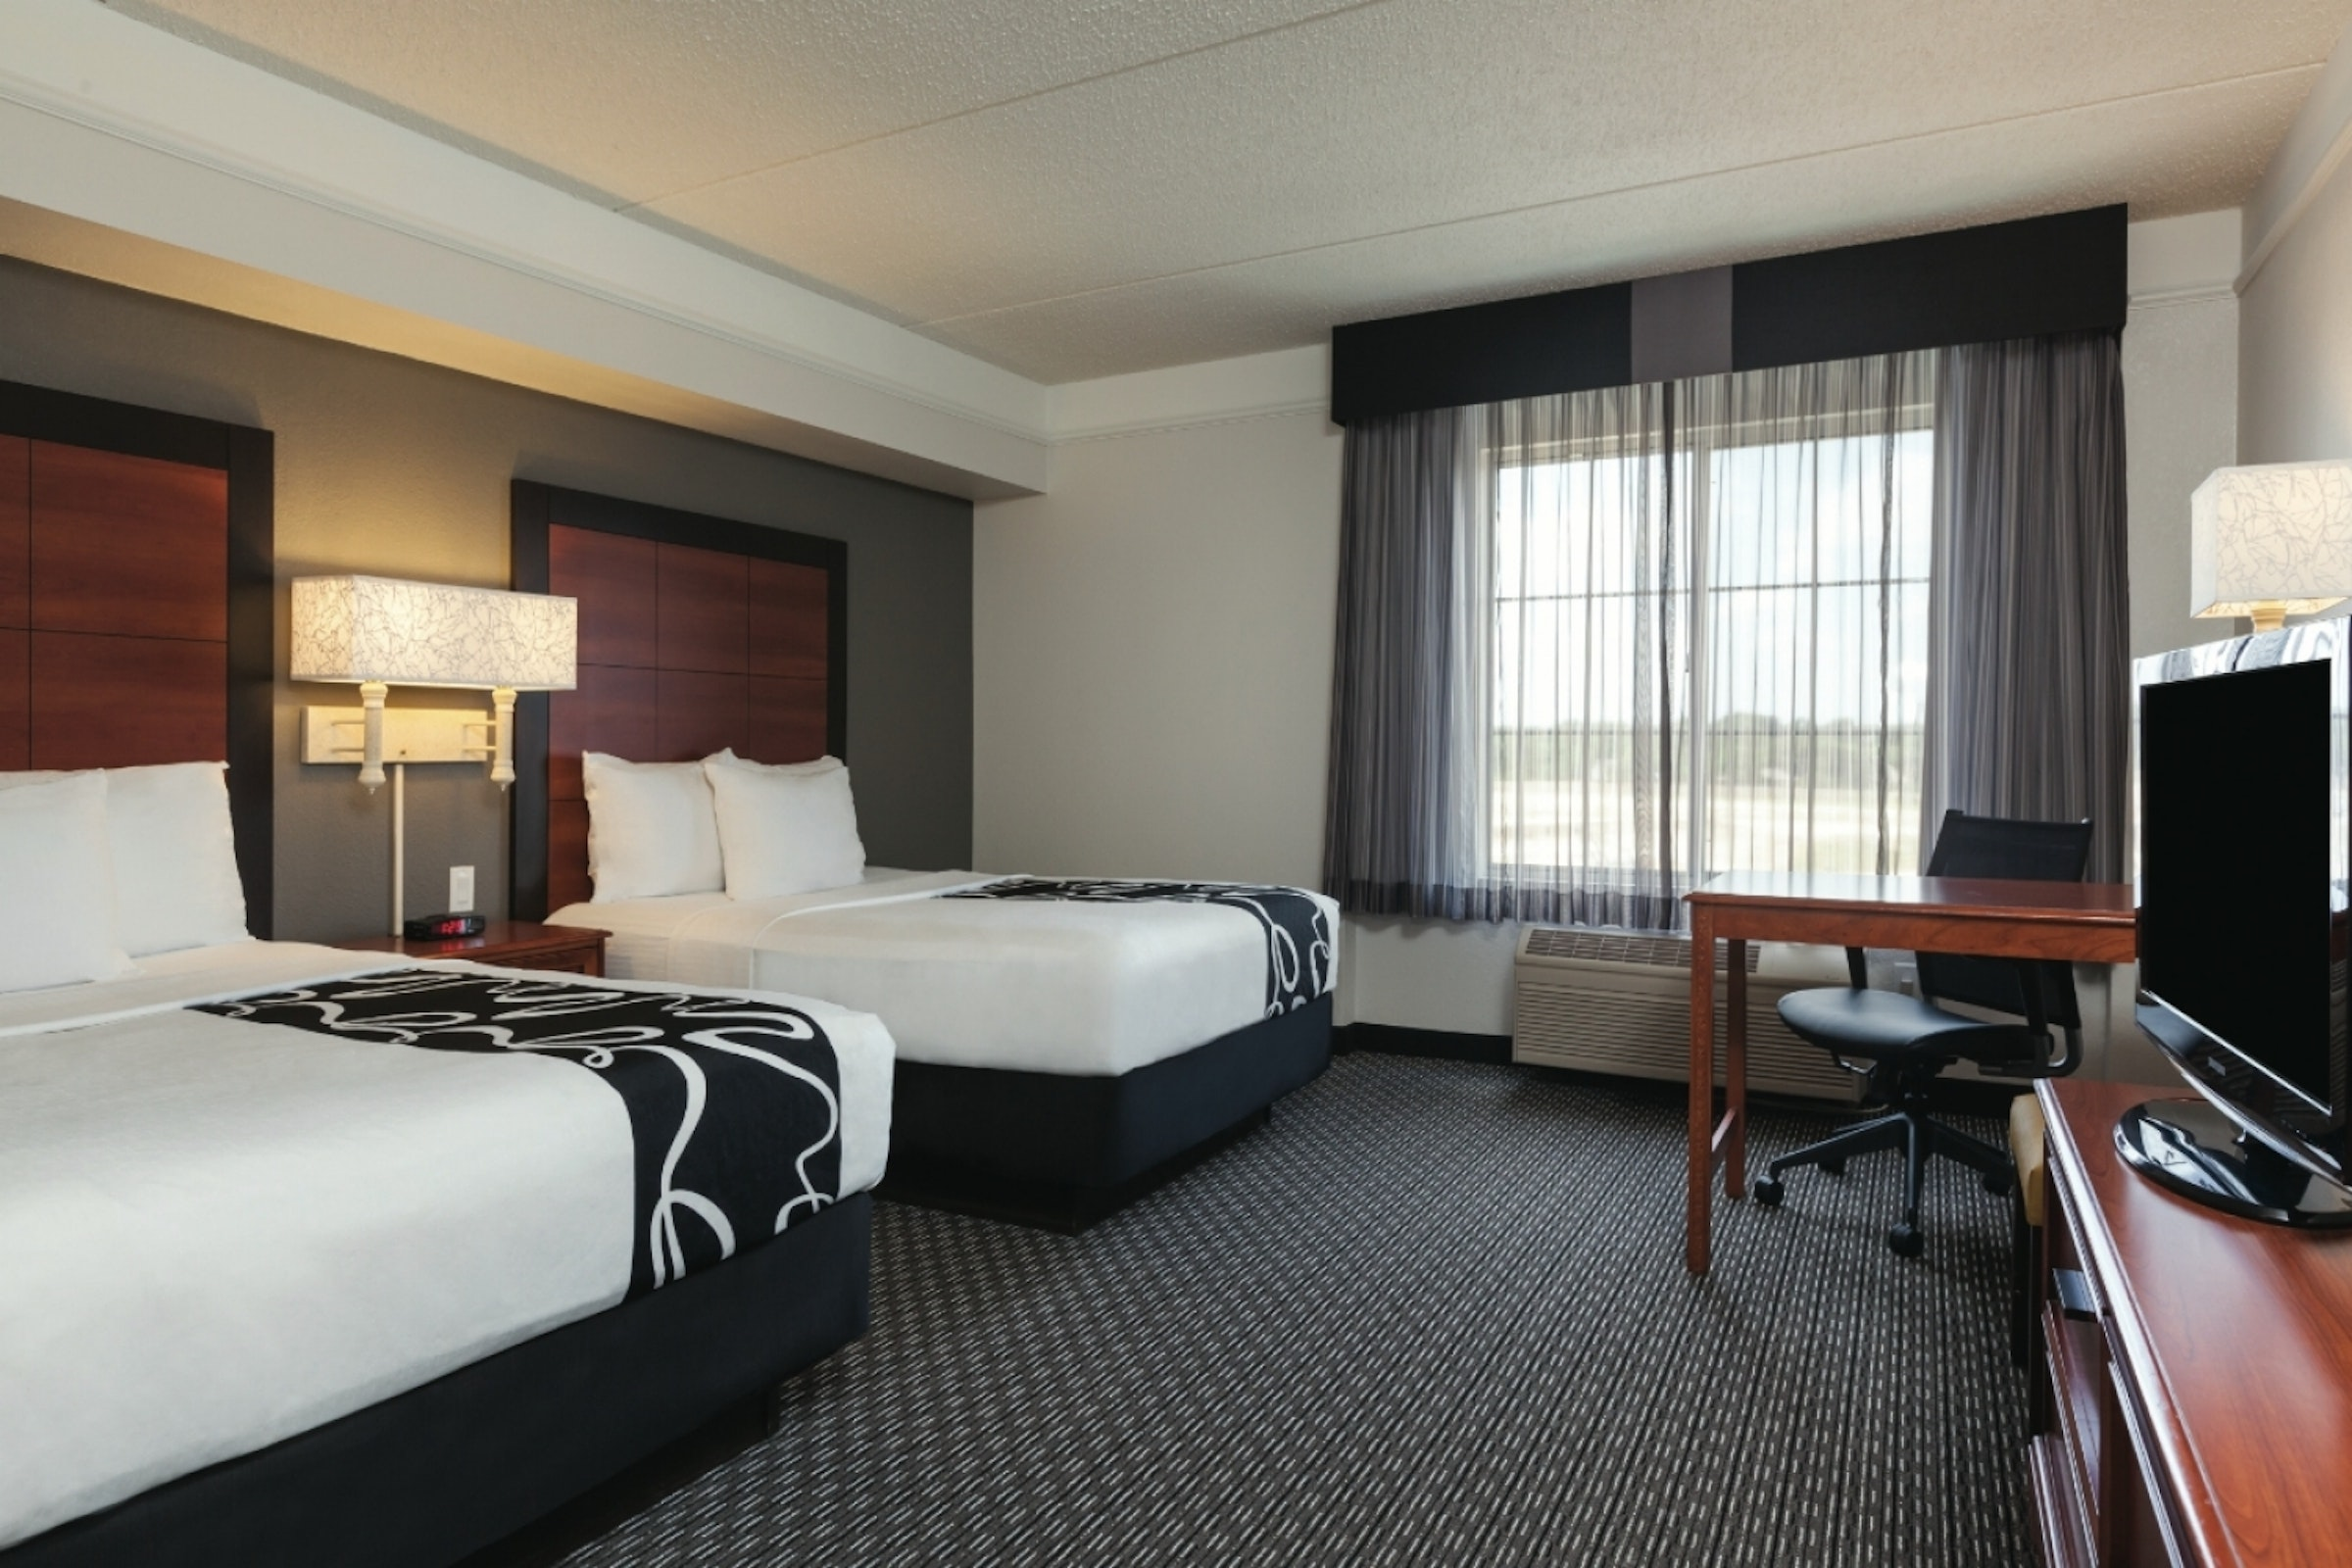 La Quinta Inn & Suites Dallas North Central in Beyond Dallas